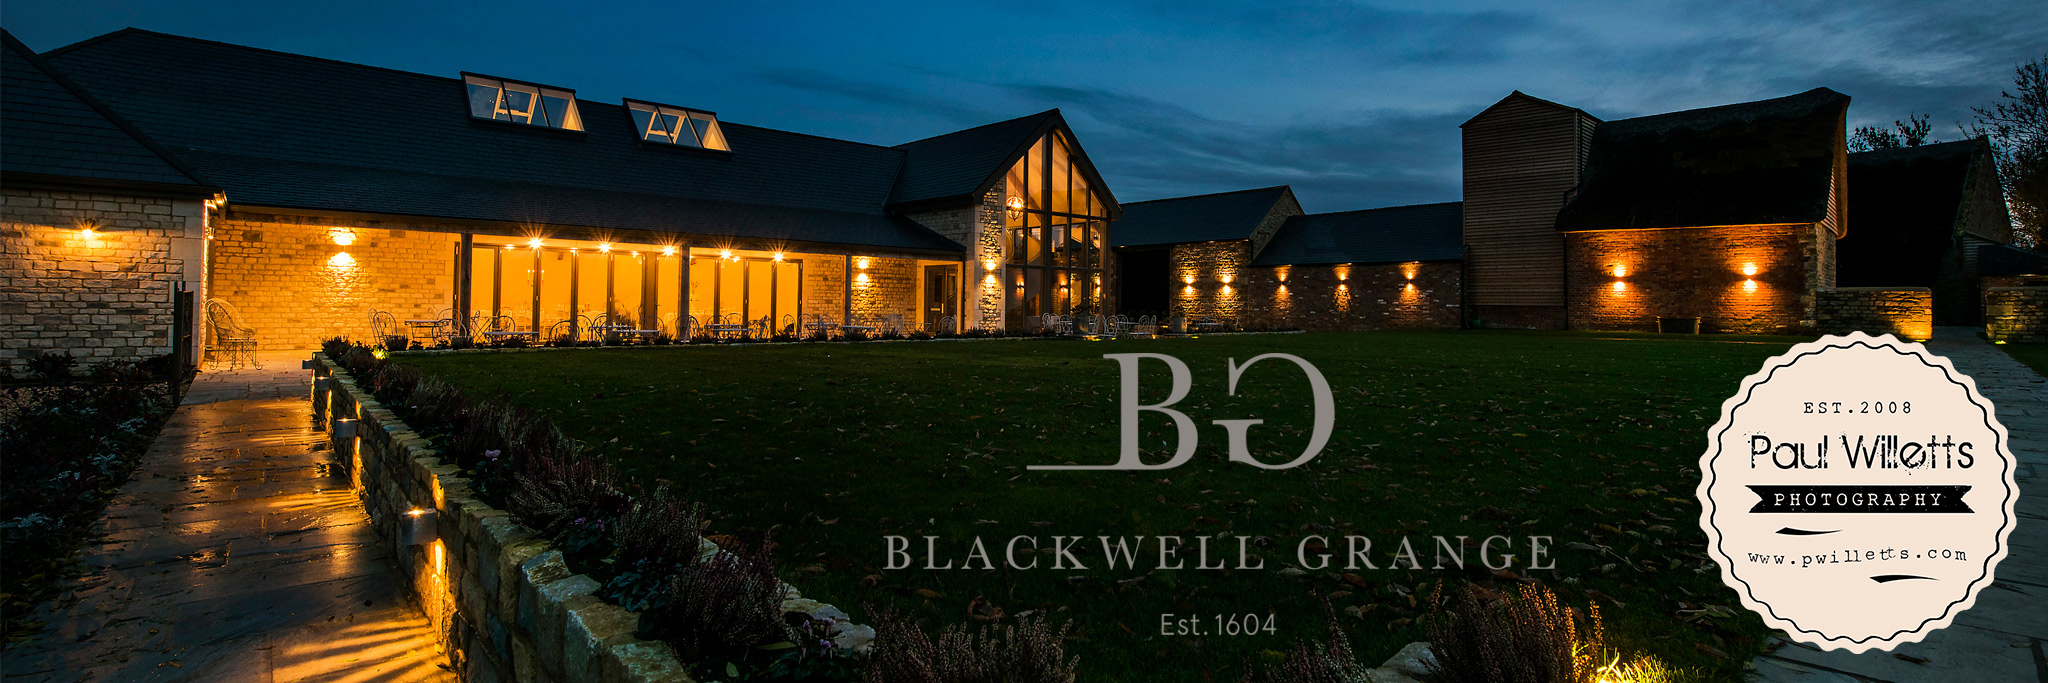 blackwell-grange-wedding-photography